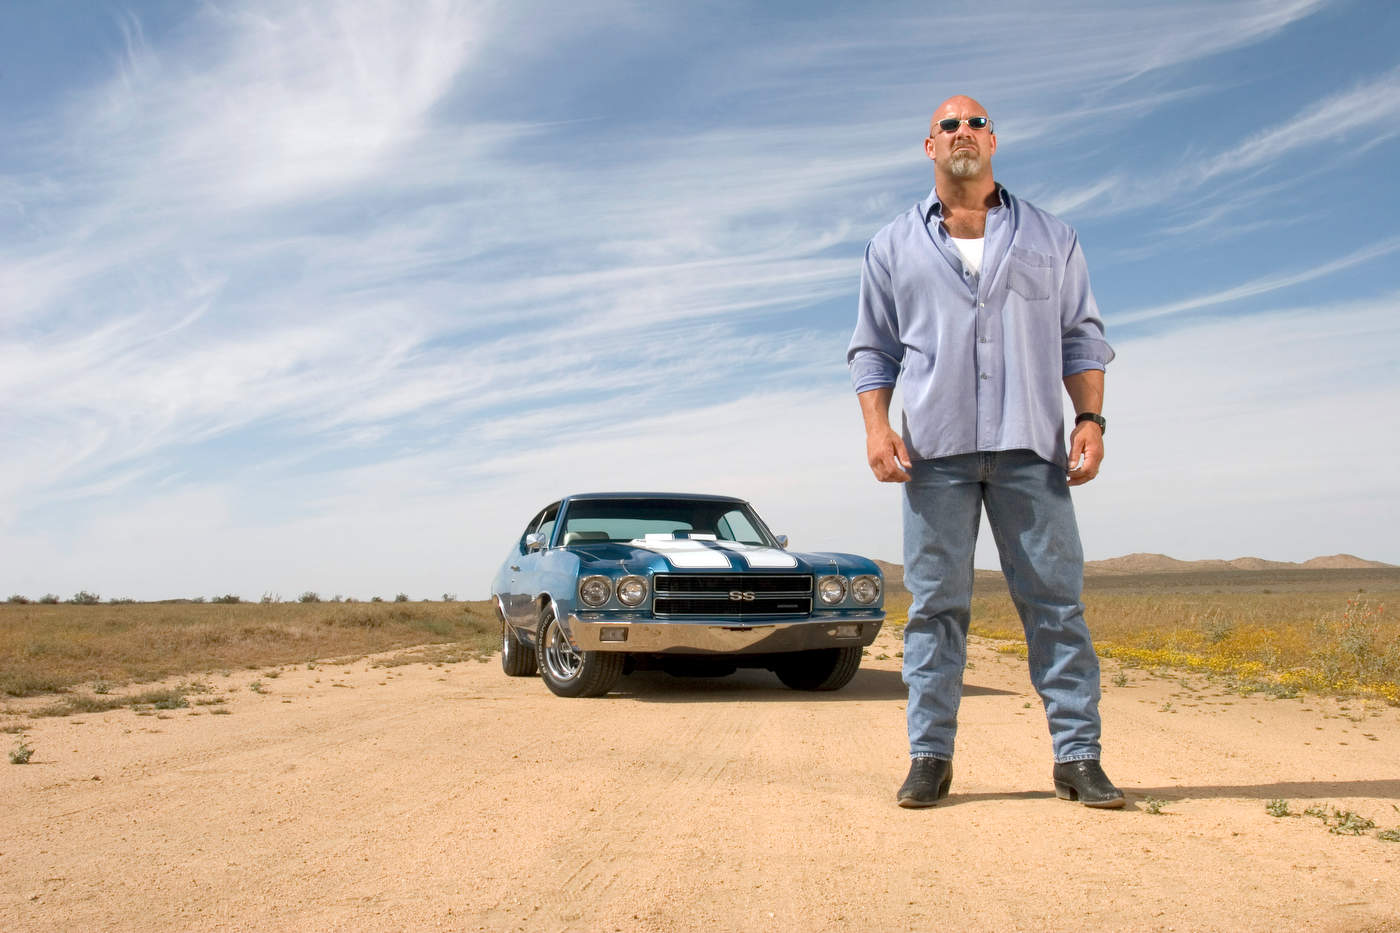 Bill Goldberg, for A&E Television.